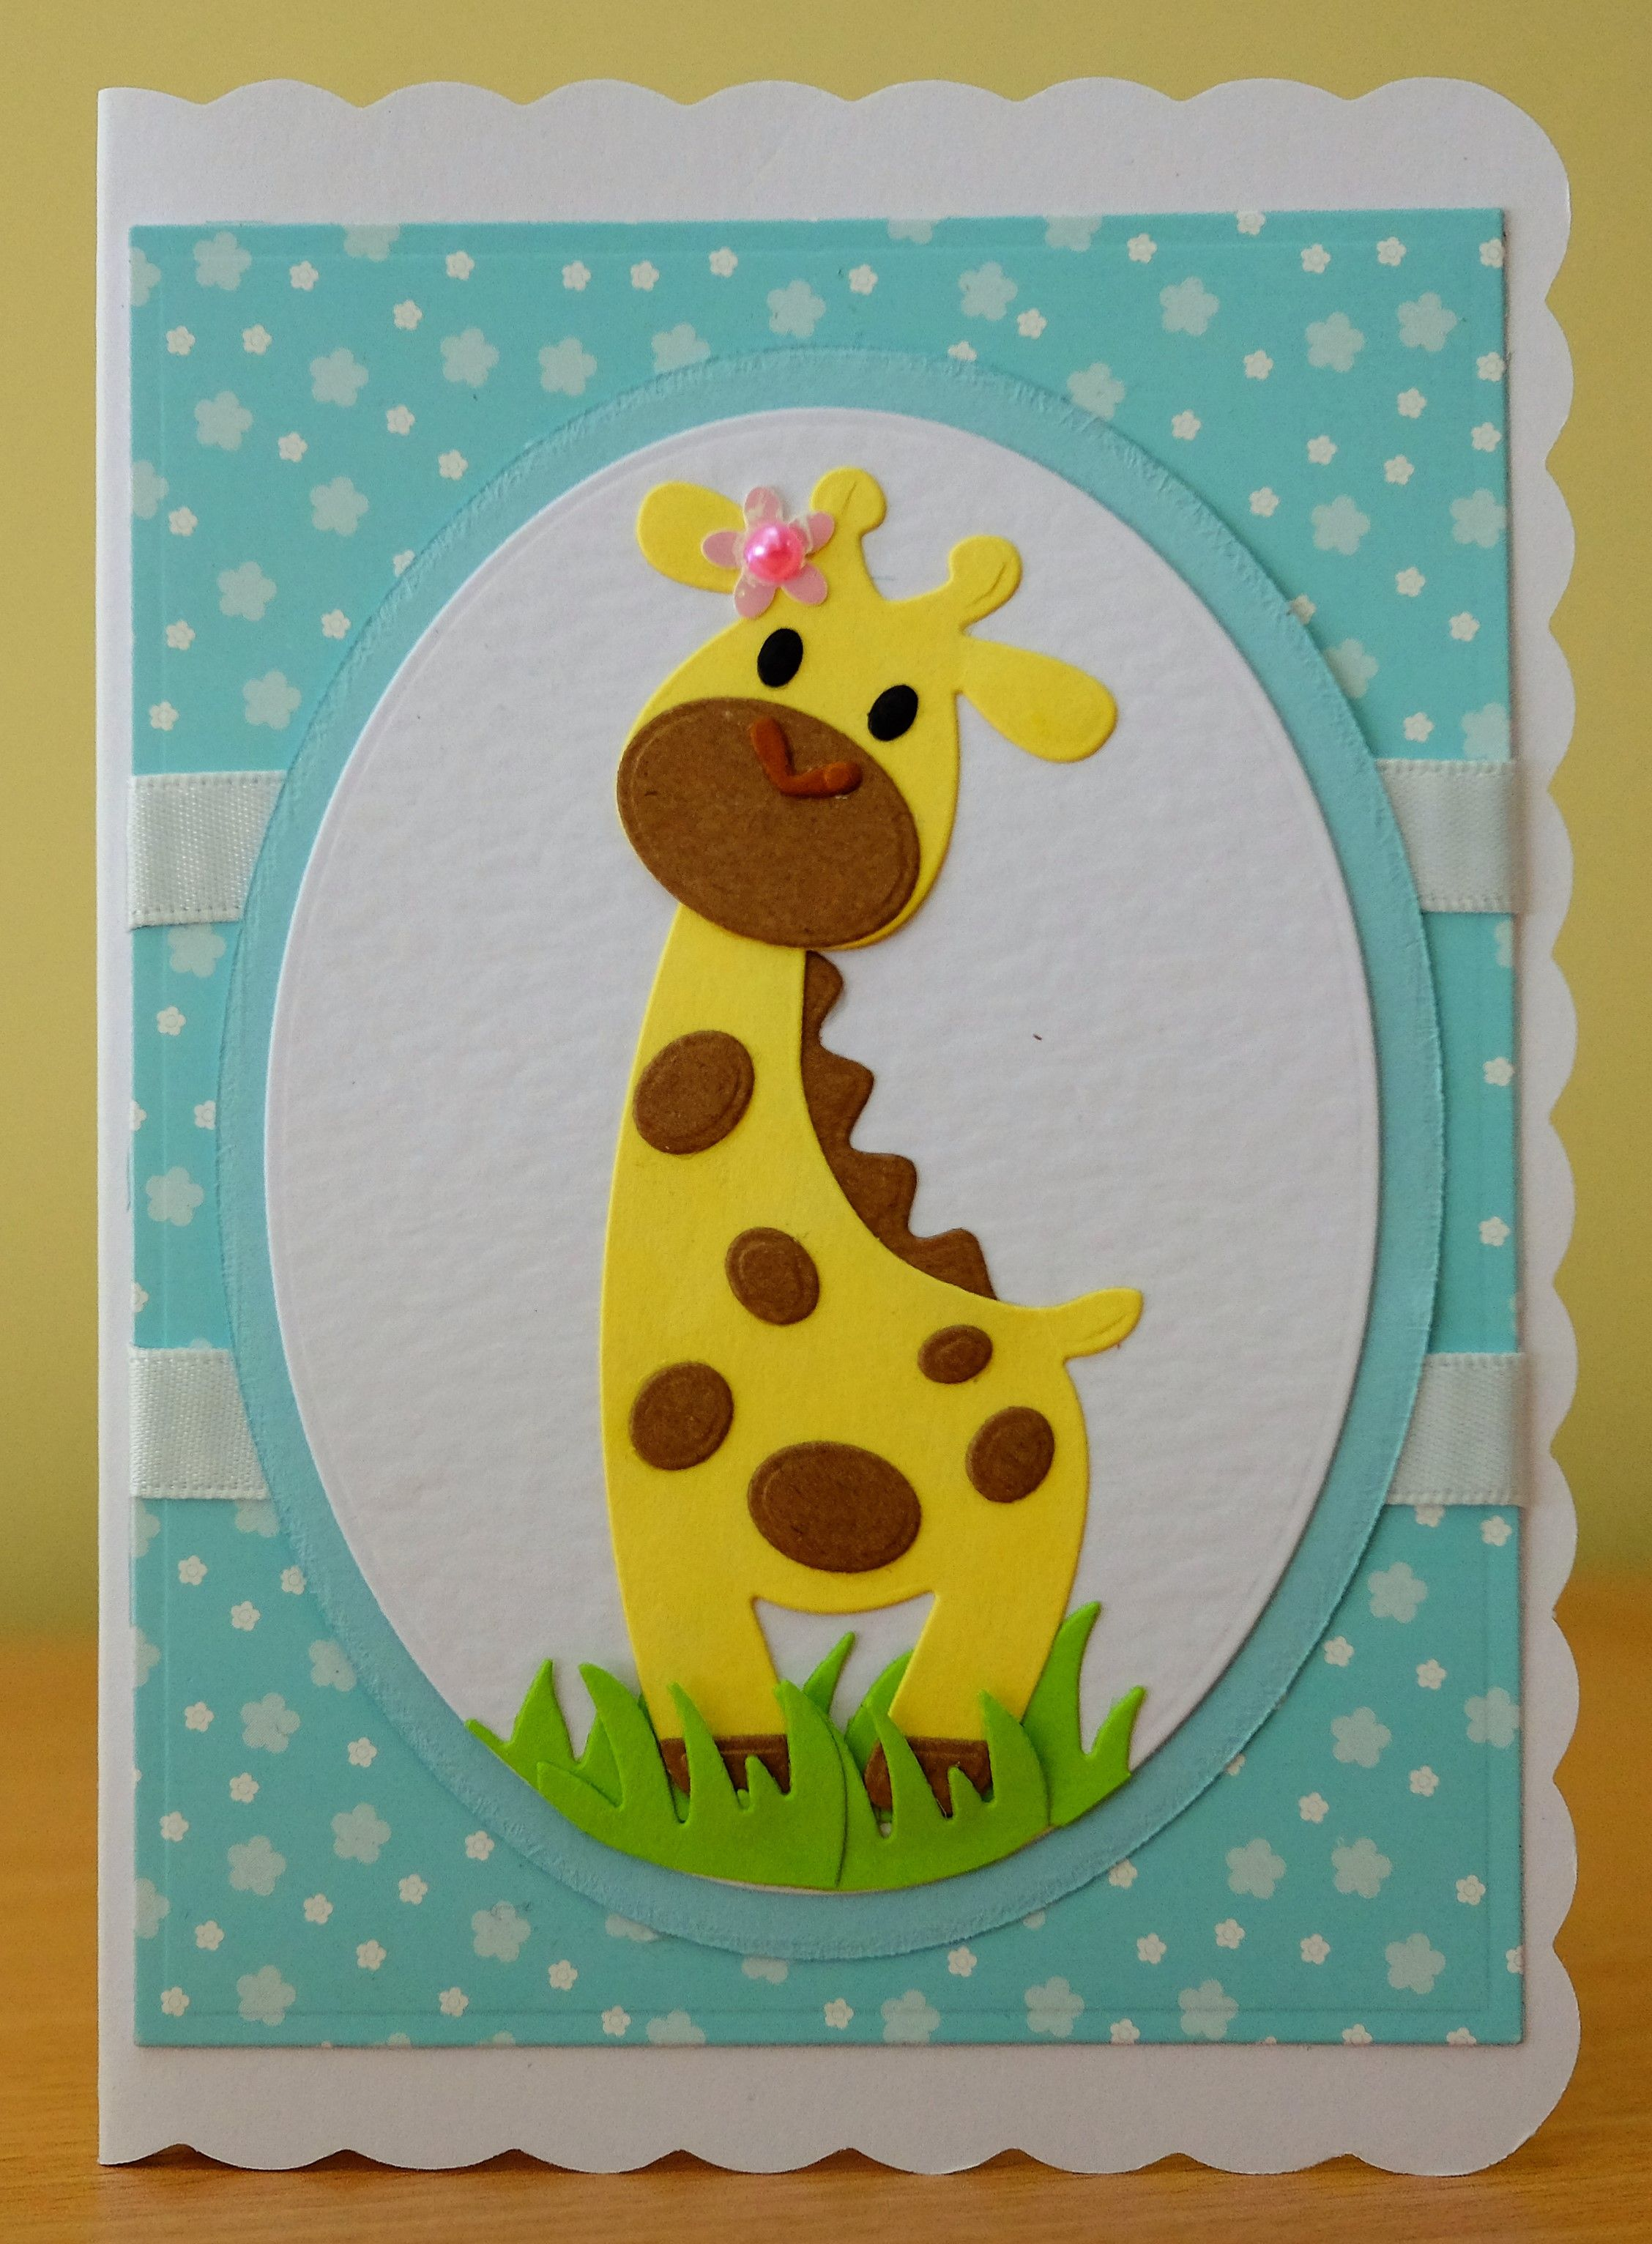 Handmade birthday card marianne collectables giraffe die for handmade birthday card marianne collectables giraffe die for more of my cards please bookmarktalkfo Images